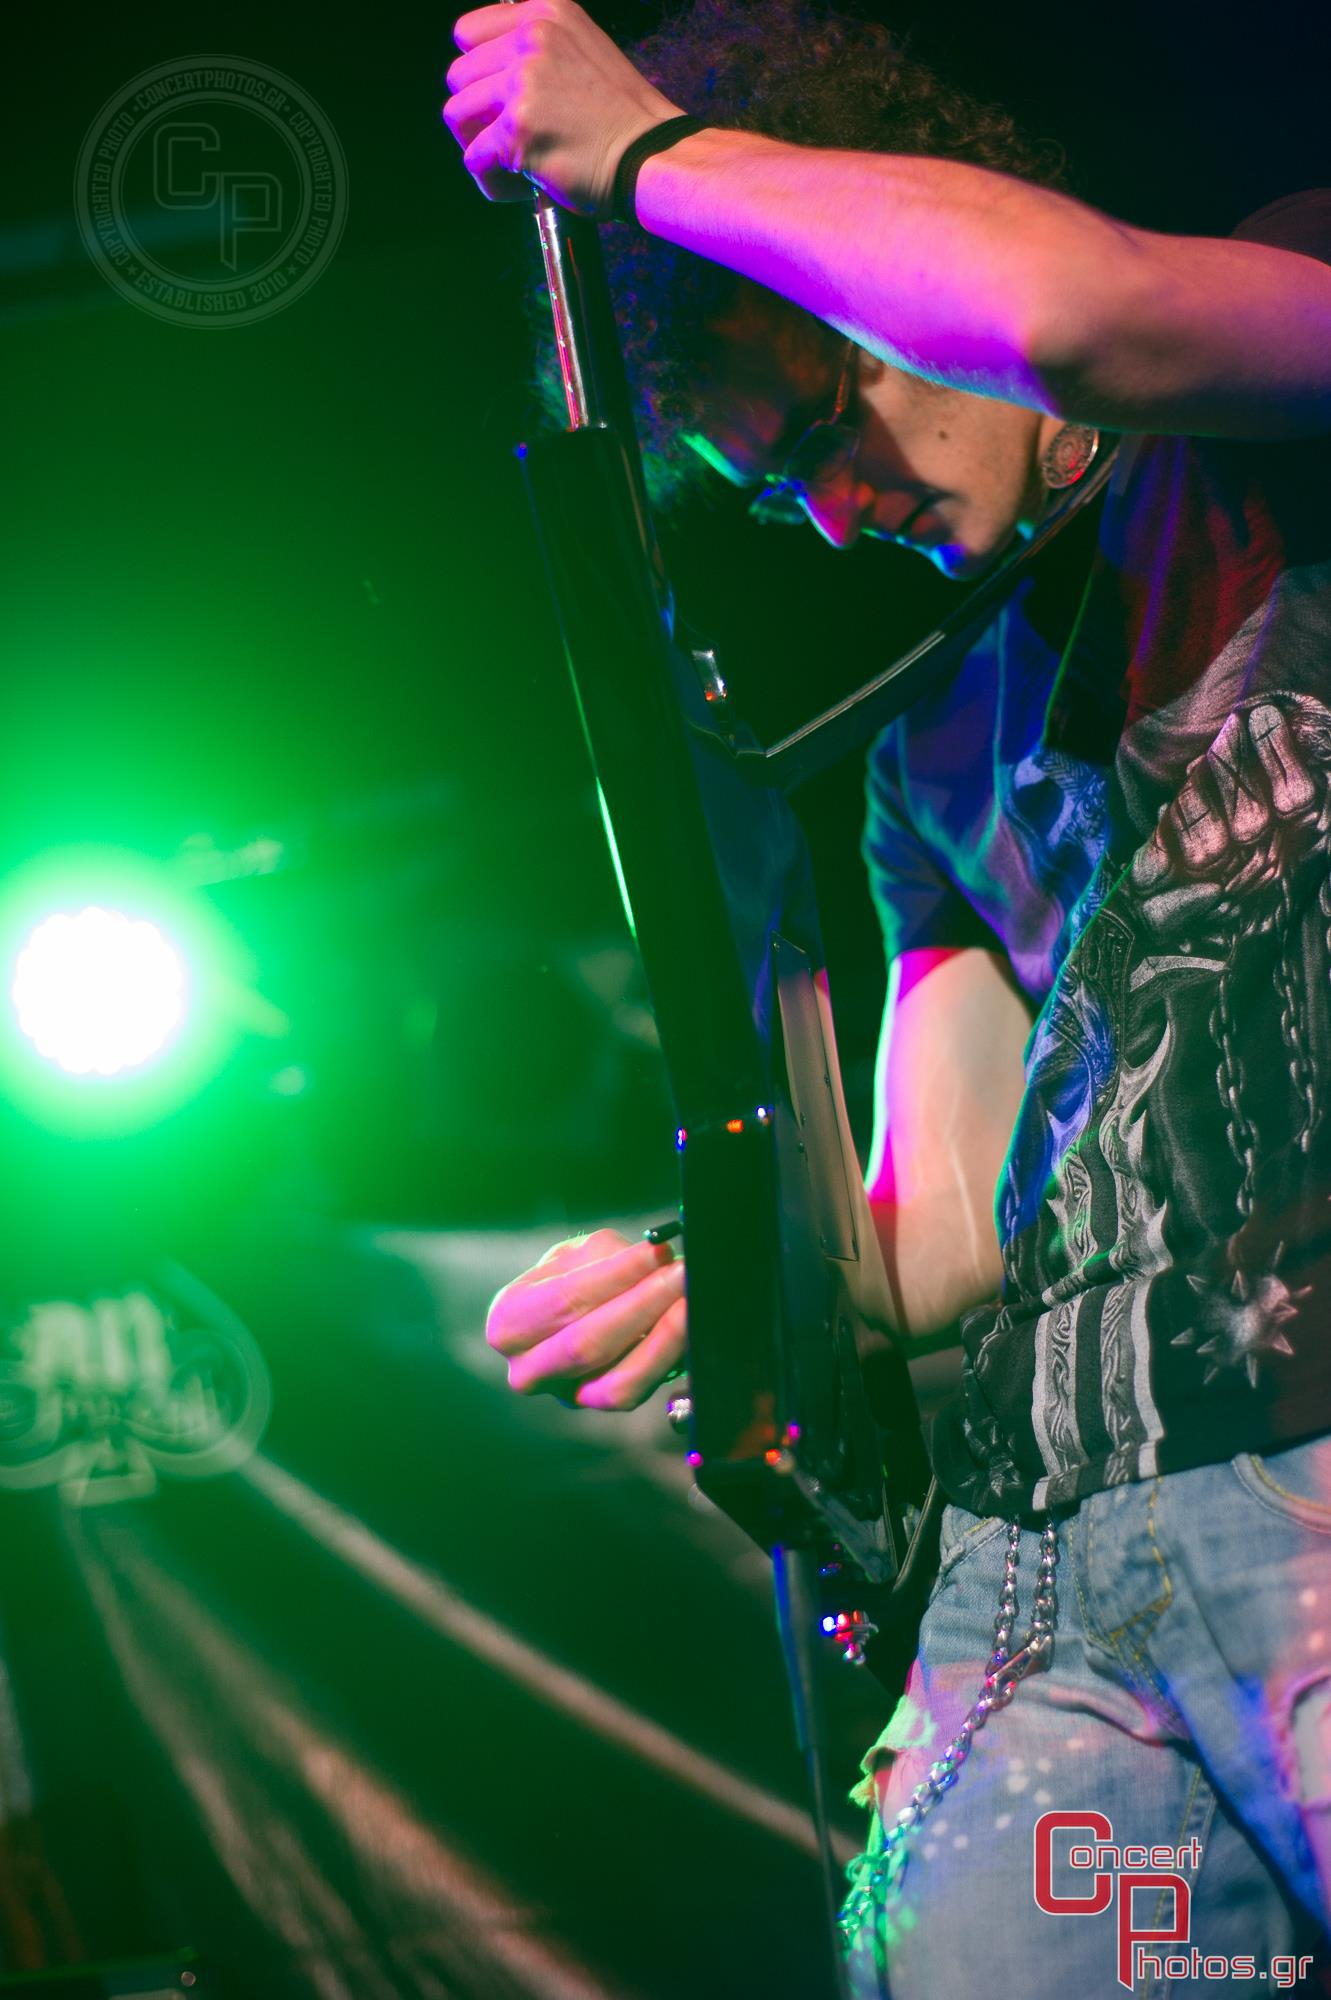 Battle Of The Bands Athens - Leg 3- photographer:  - ConcertPhotos - 20150104_2148_24